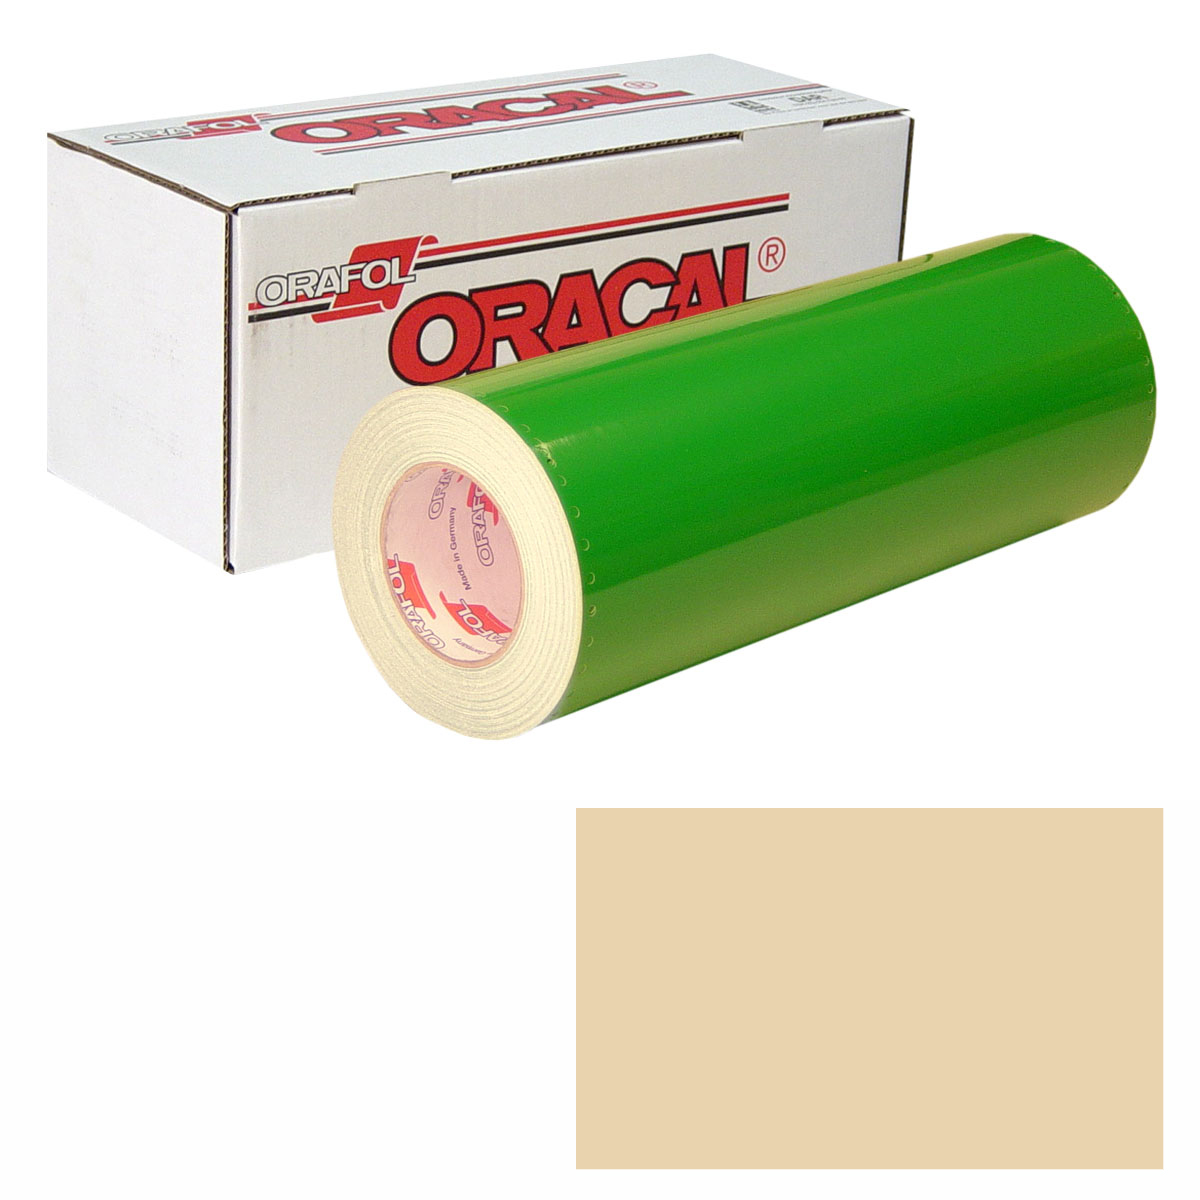 ORACAL 631 Unp 24In X 50Yd 082 Beige